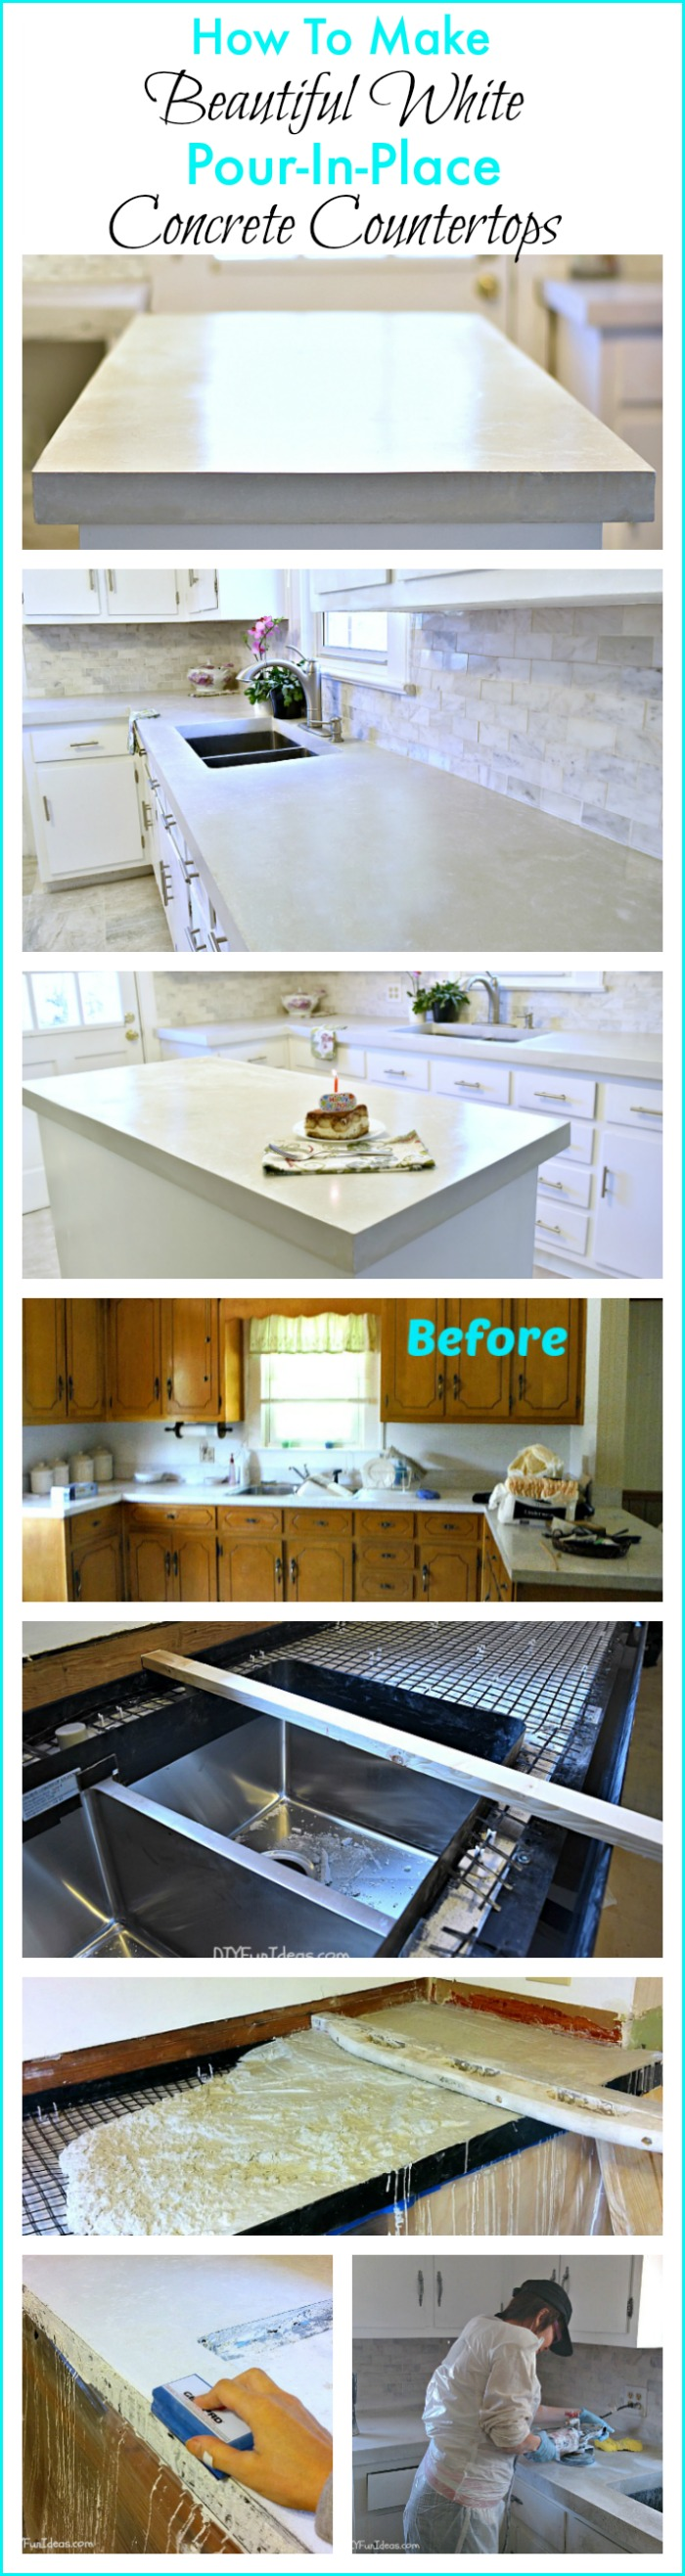 Making Your Own Concrete Countertop How To Make Diy Cast In Place White Concrete Countertops Do It